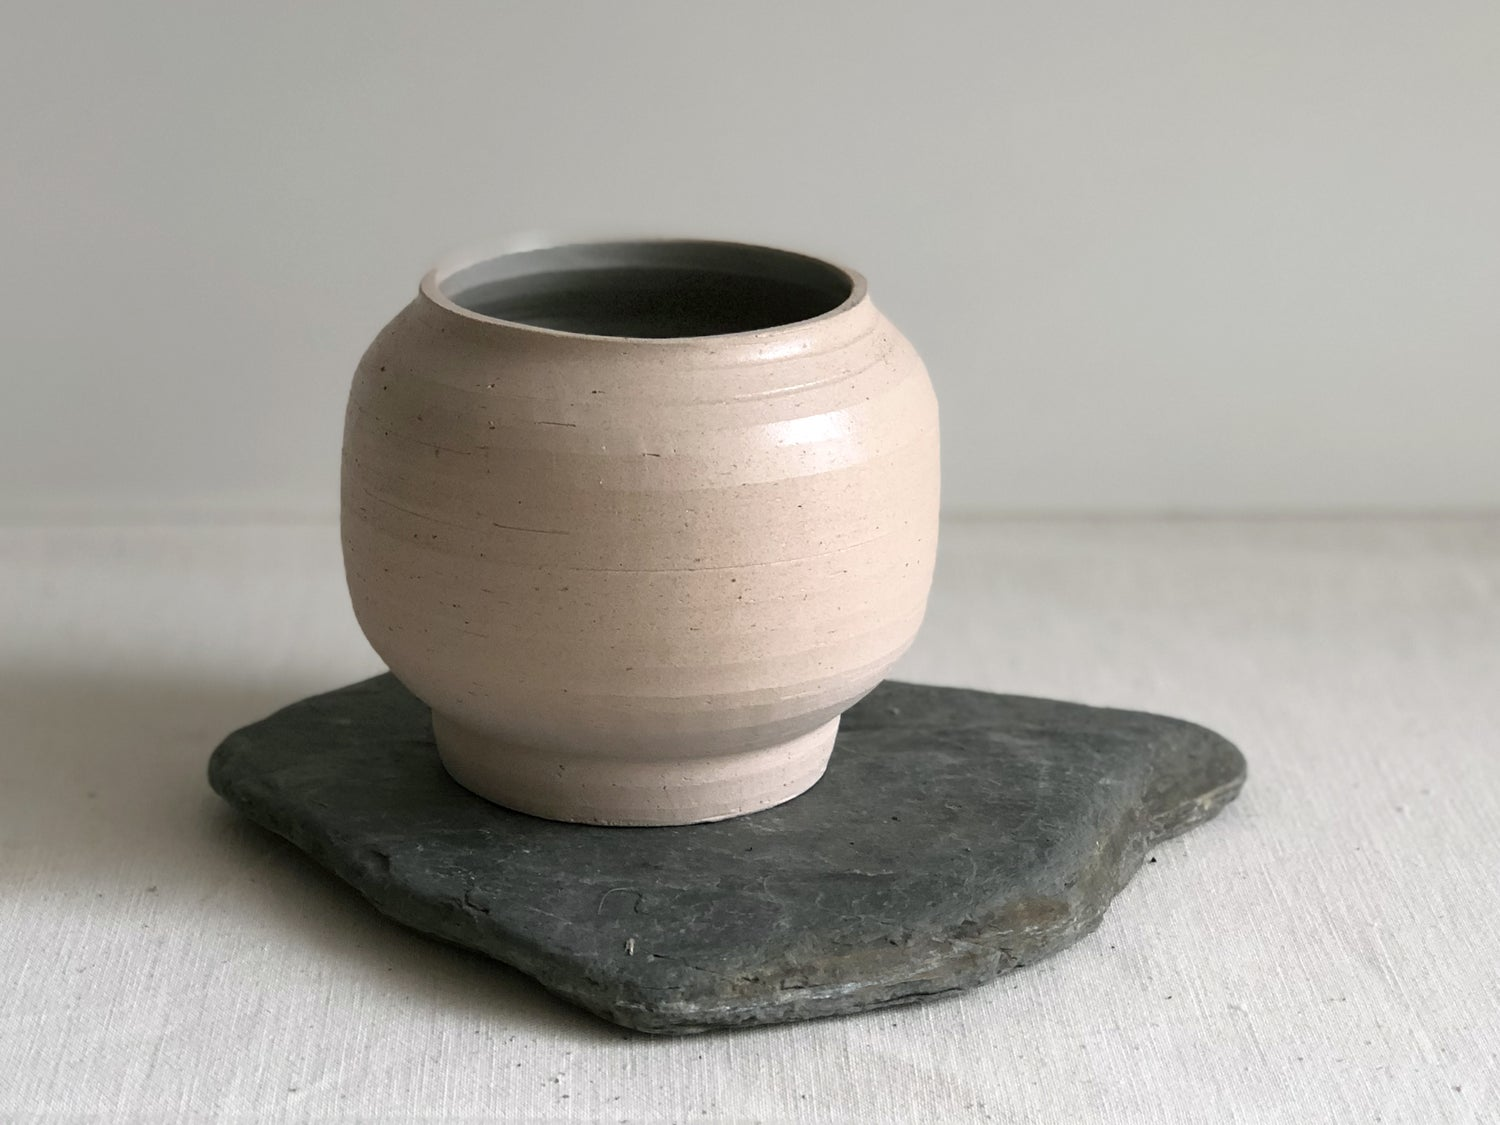 Image of Taipa small round vessel with schist base